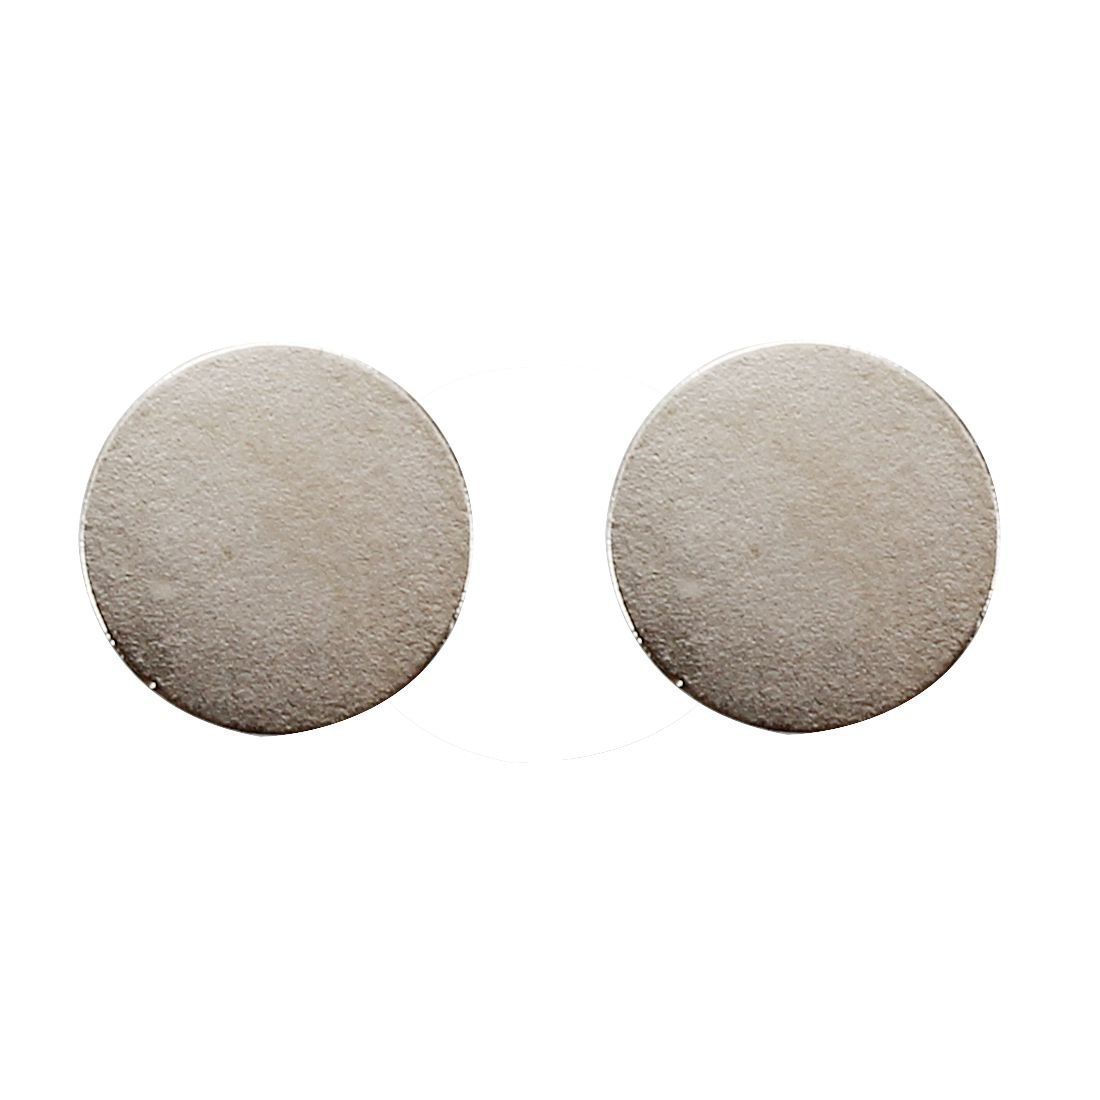 Neodymium Magnets R 50x10mm x 1 mm Disc Rare Earth Neodymium Super strong magnetic N35 Craft Modelling SODIAL